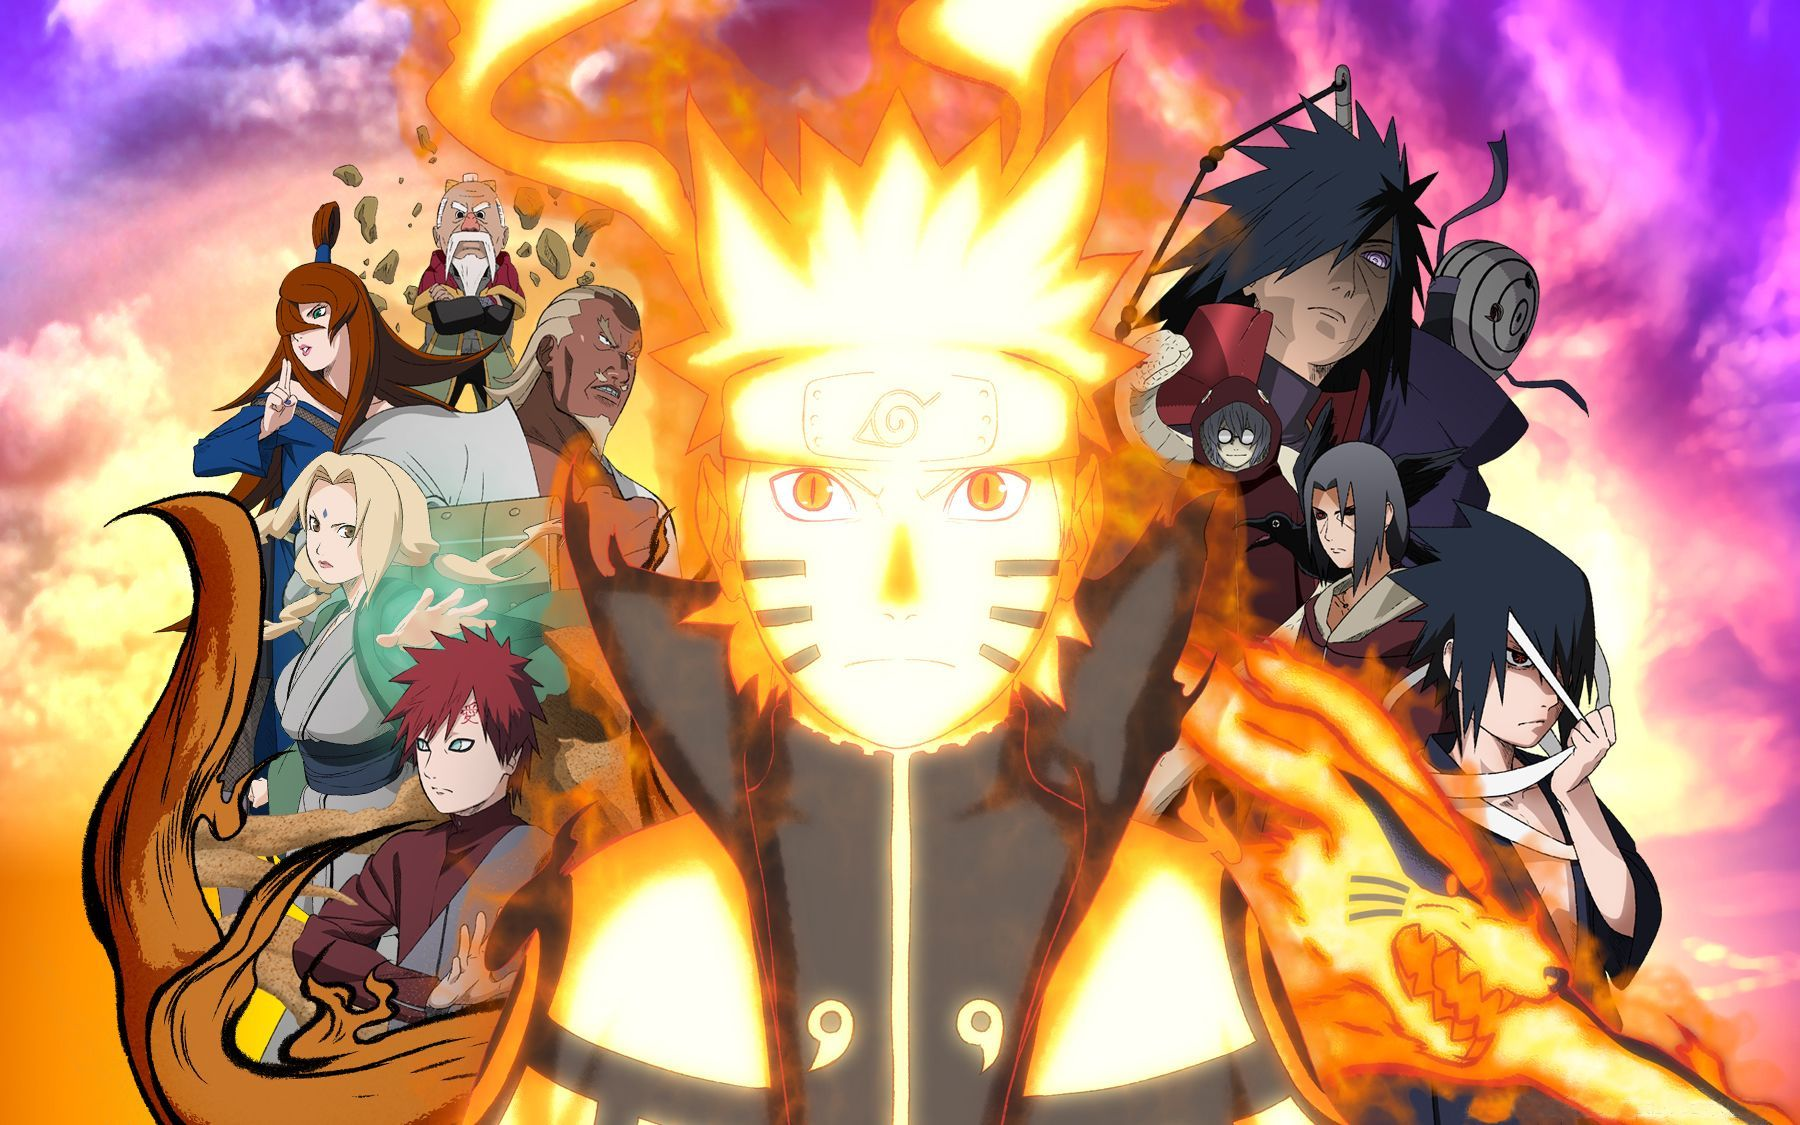 Anime Naruto Shippuden Wallpapers Top Free Anime Naruto